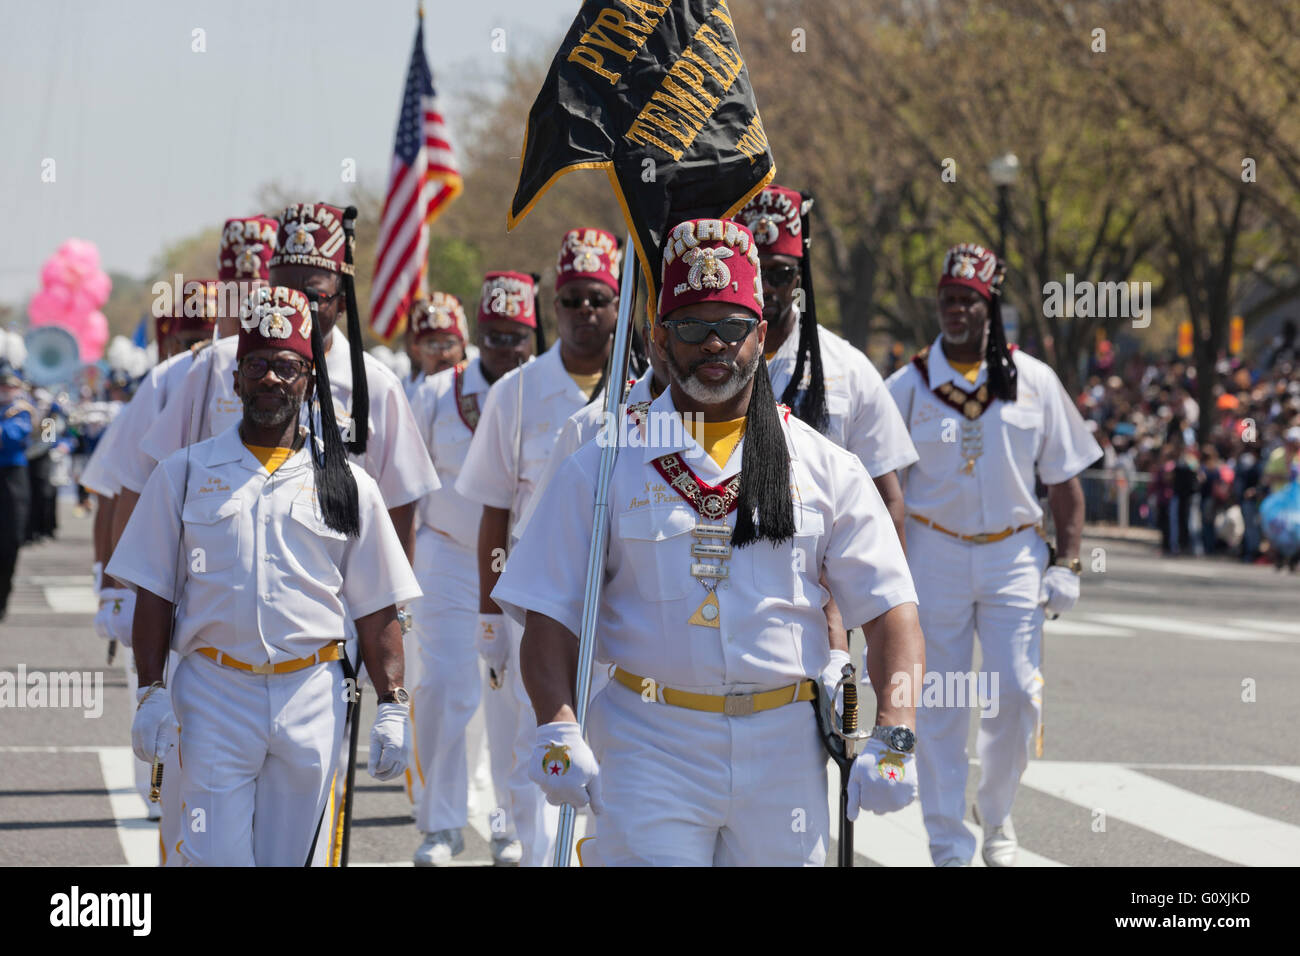 Pyramid Shriners members participating in parade - Washington, DC USA - Stock Image